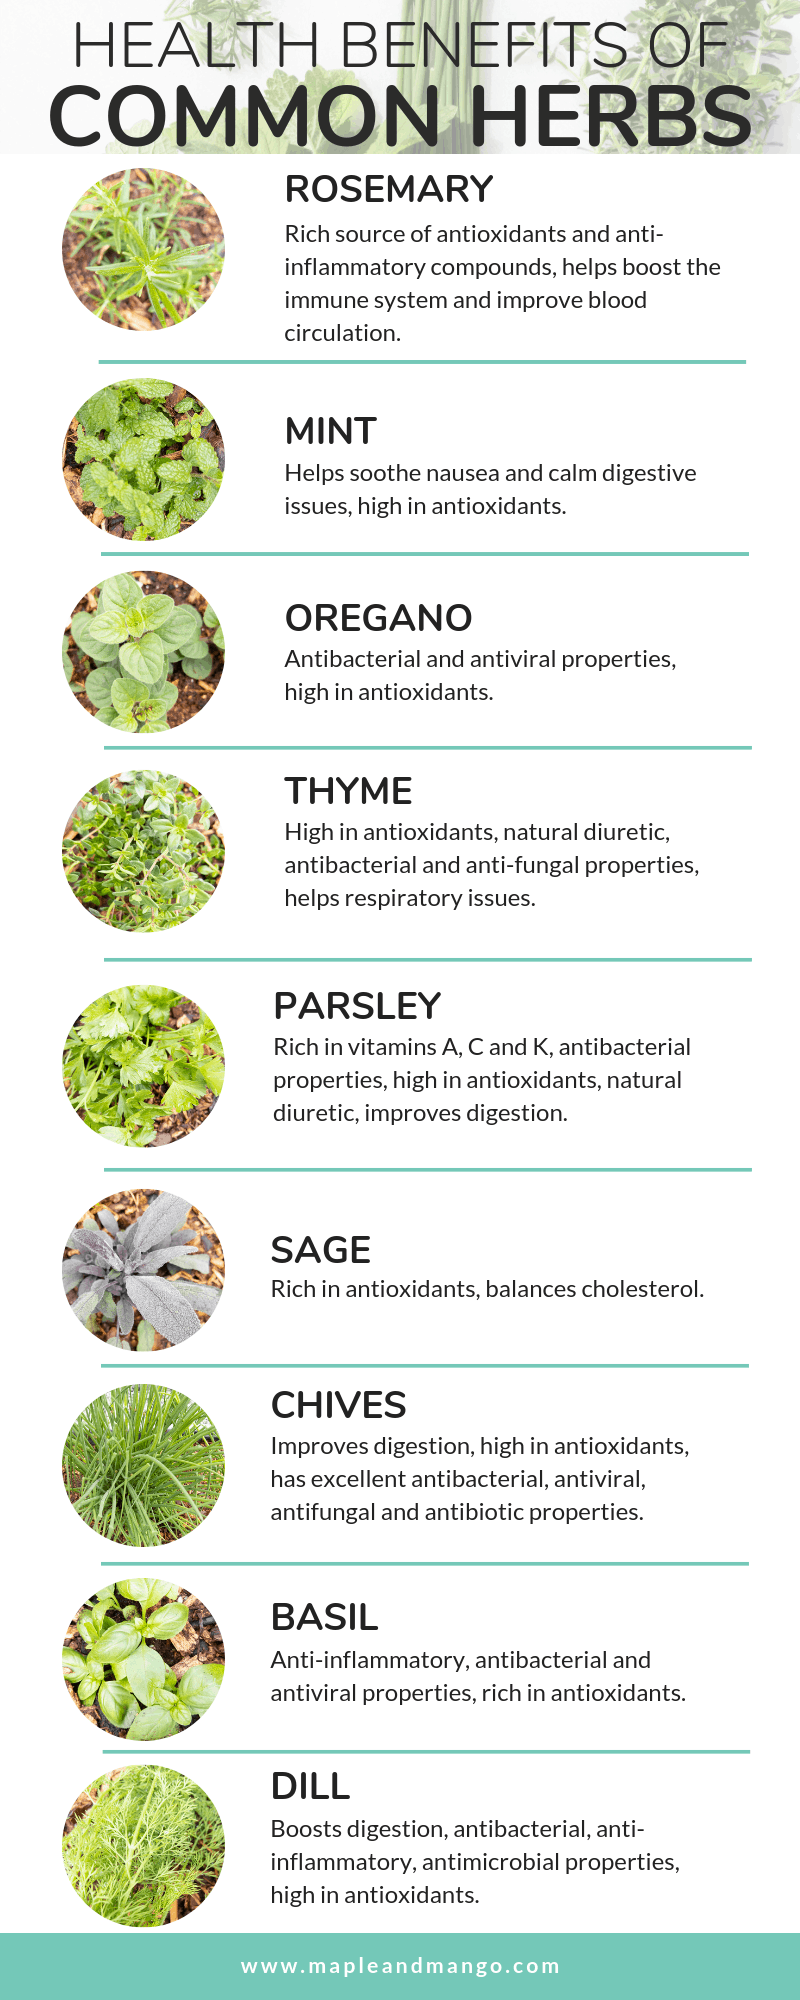 infographic on the health benefits of common herbs